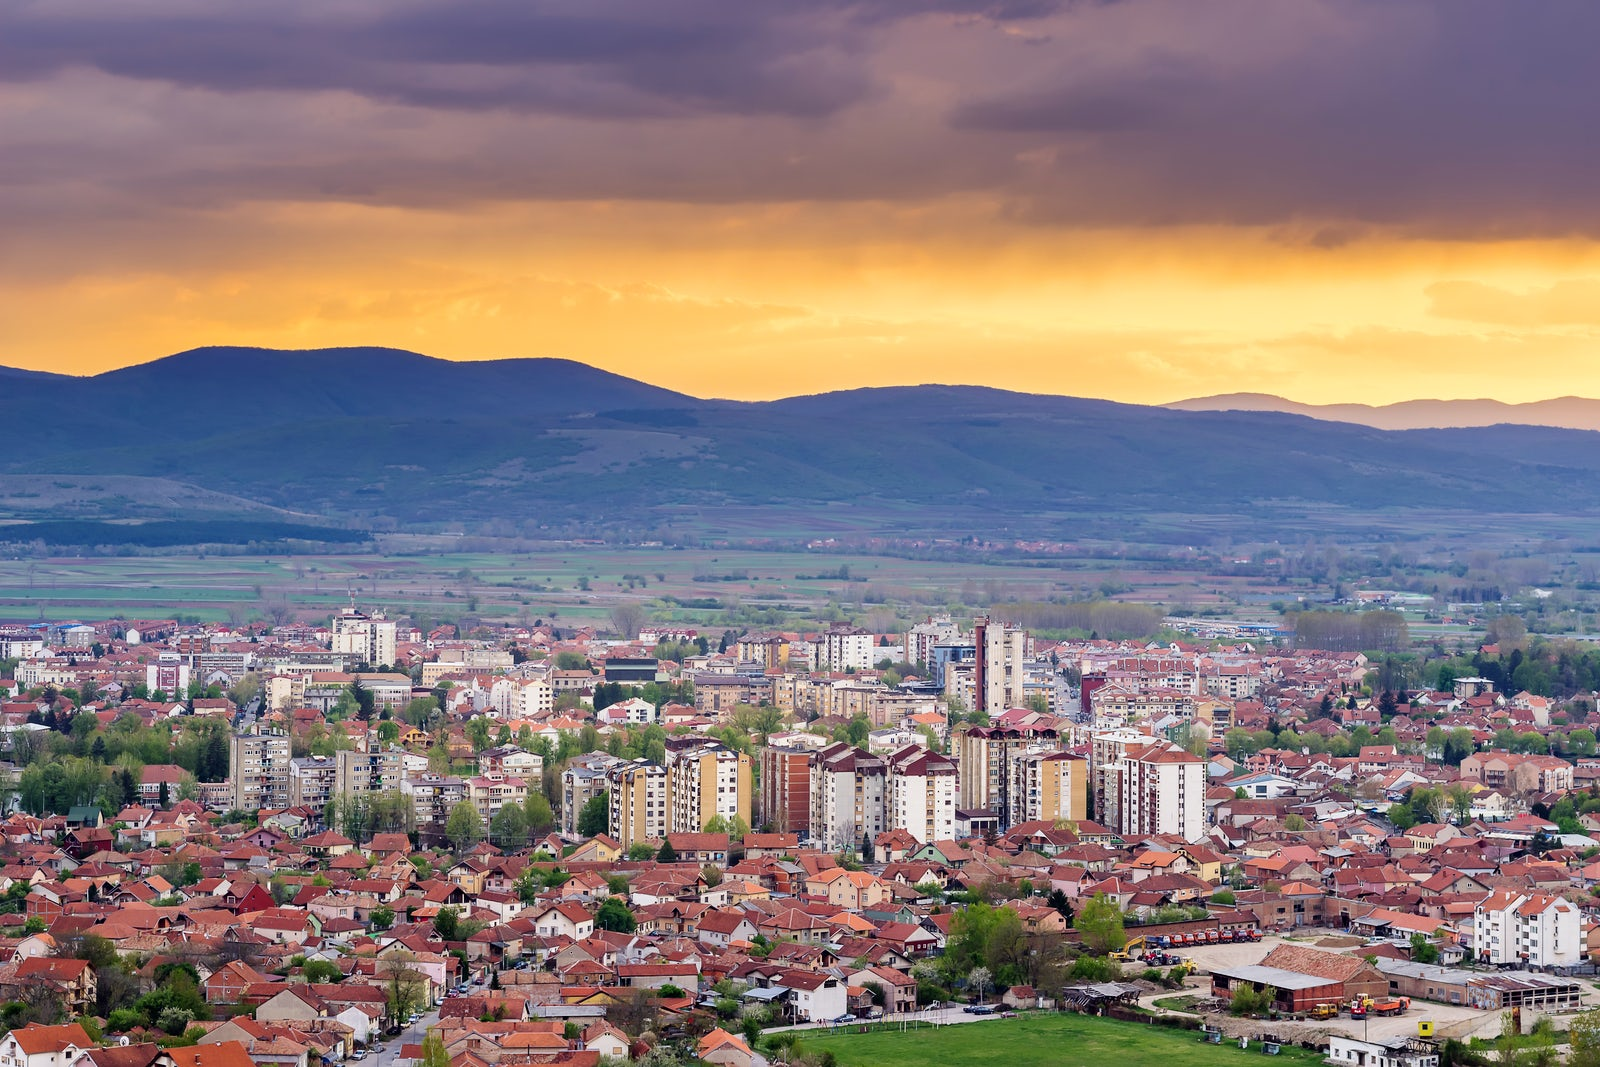 !i18n:es:data.cities:pirot.picture.caption